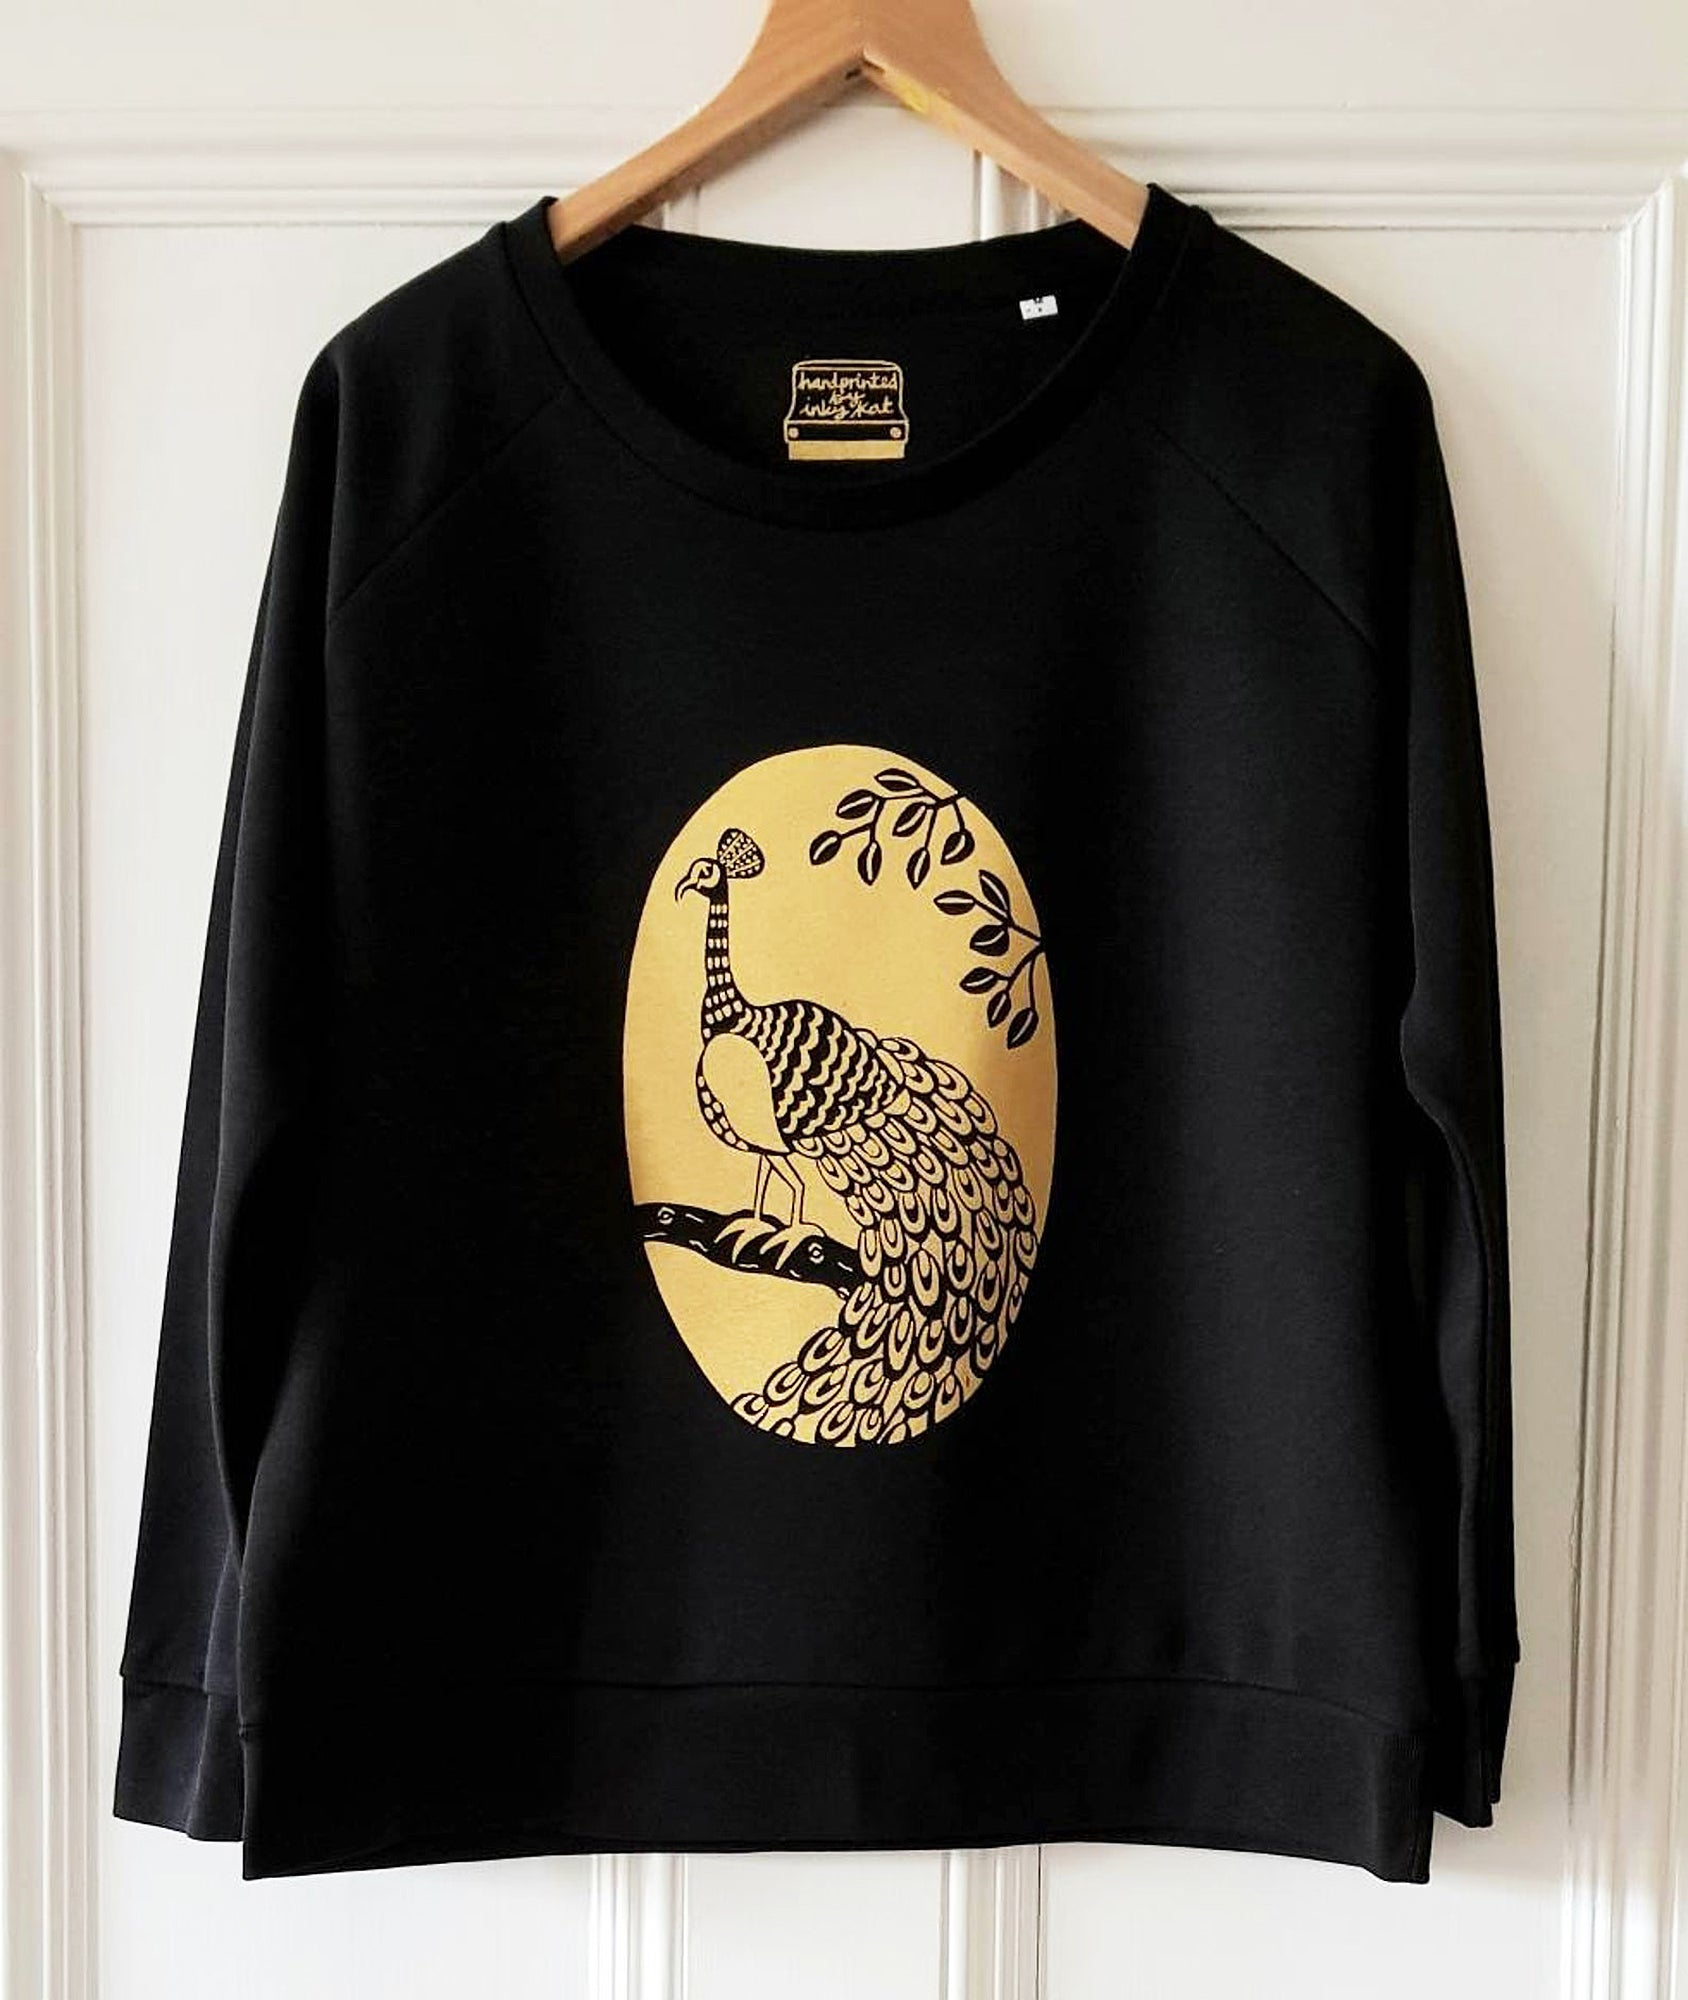 Peacock ladies sweatshirt